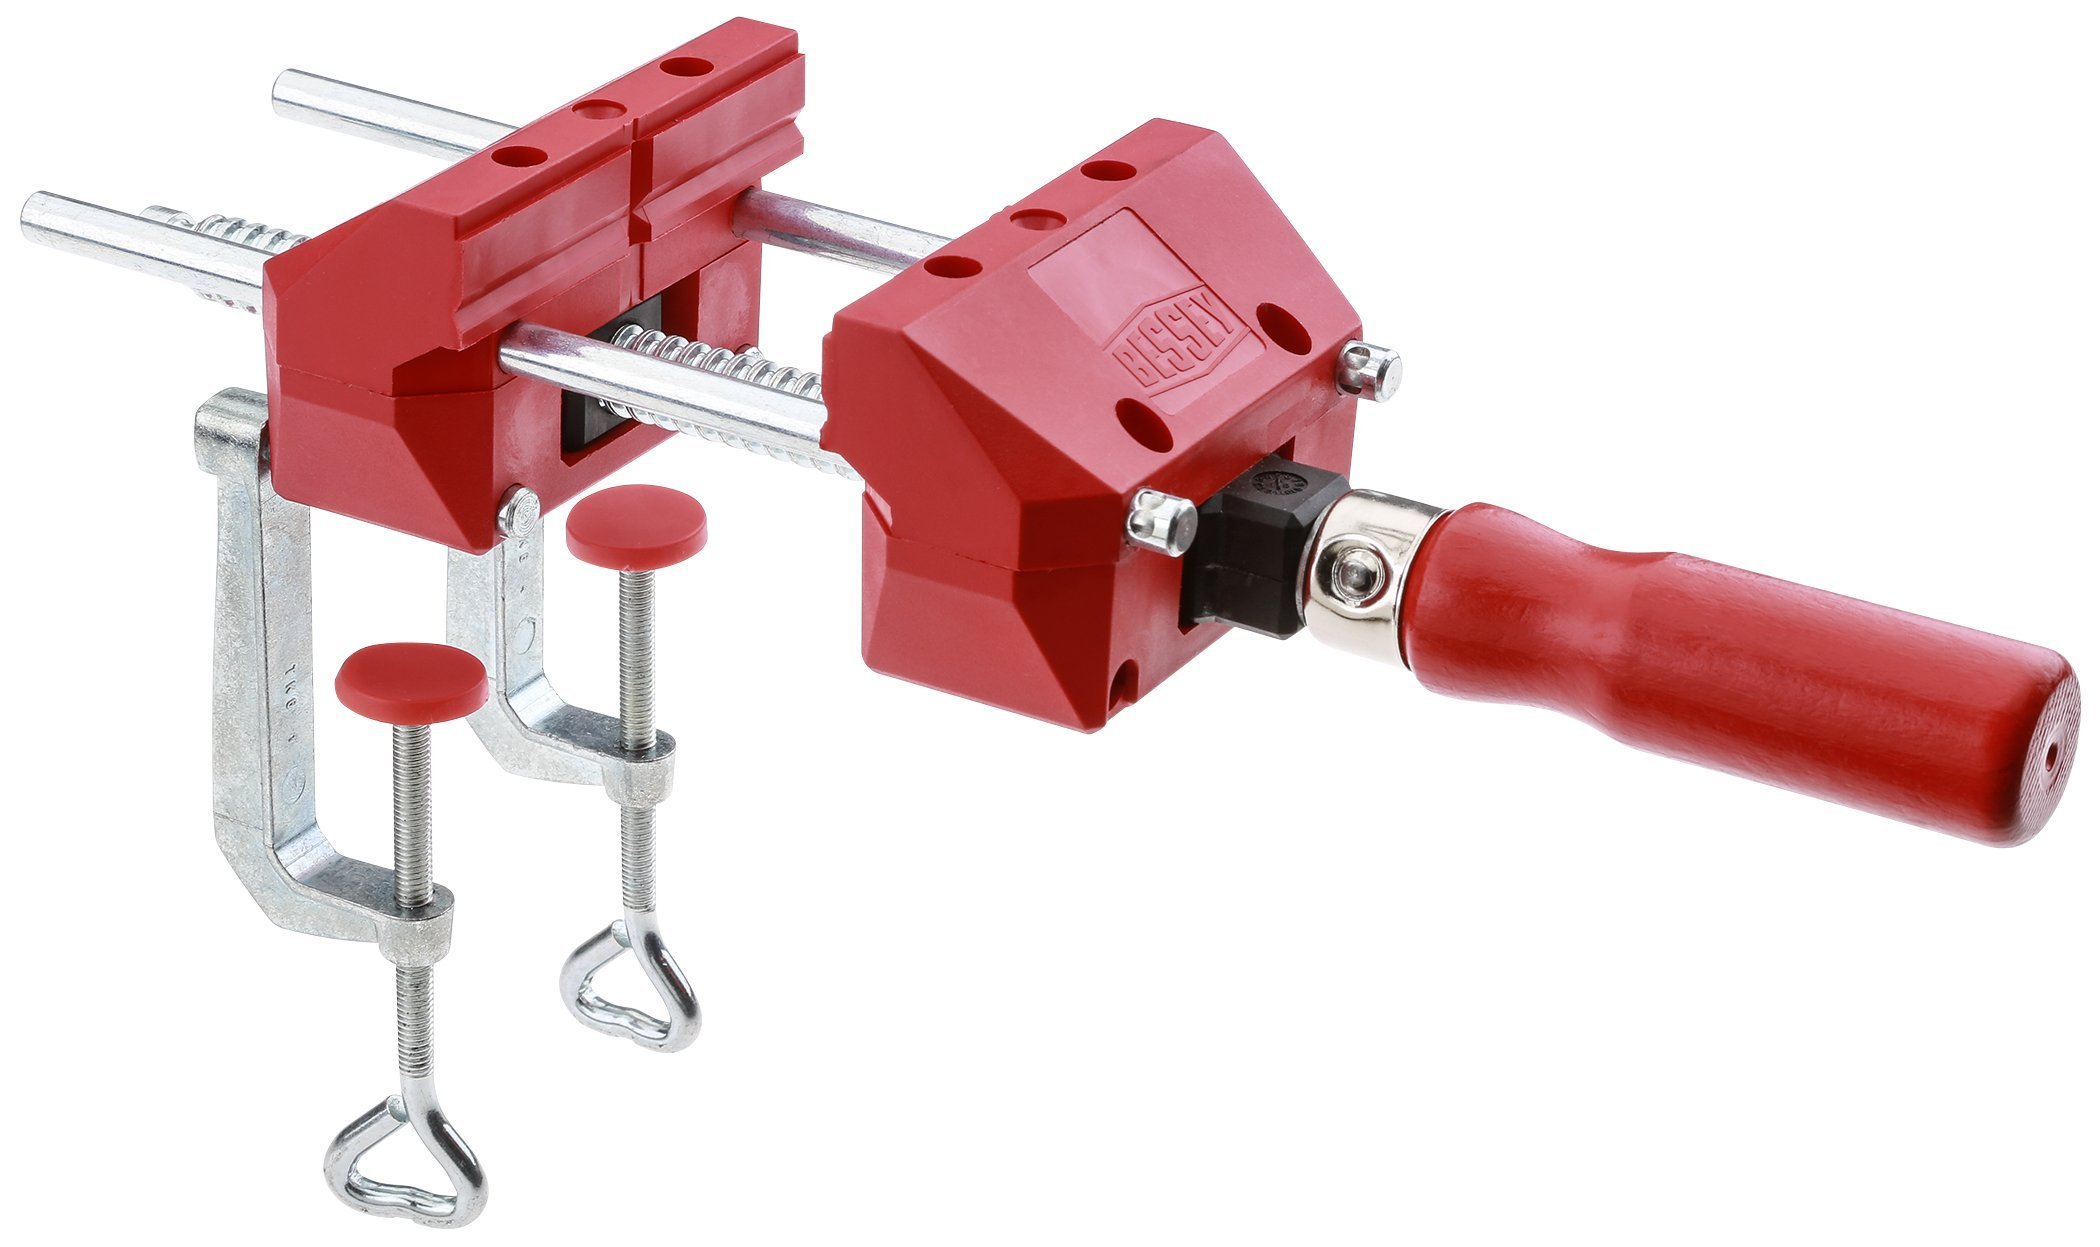 Bessey S10 G7011 Vise Clamp